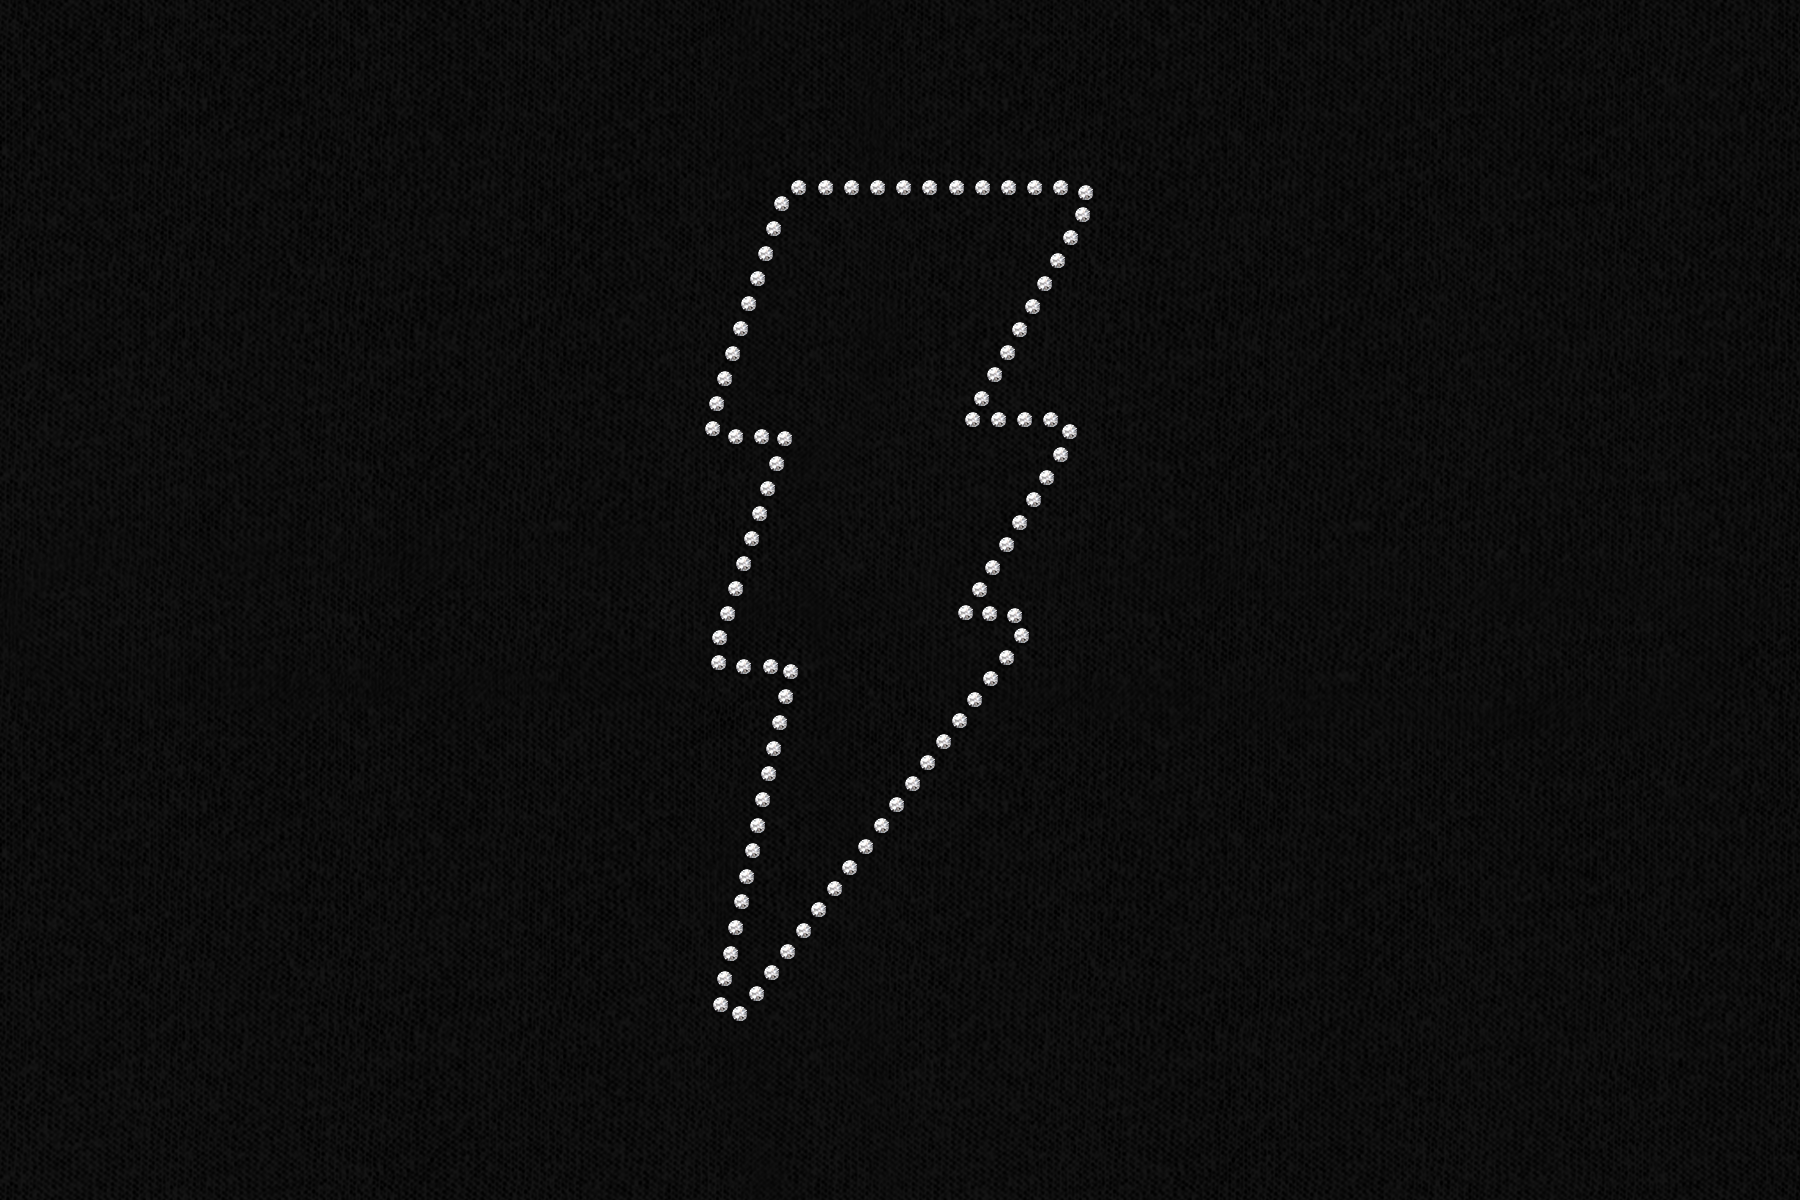 Rhinestone Lightning Bolt SVG File Template example image 3